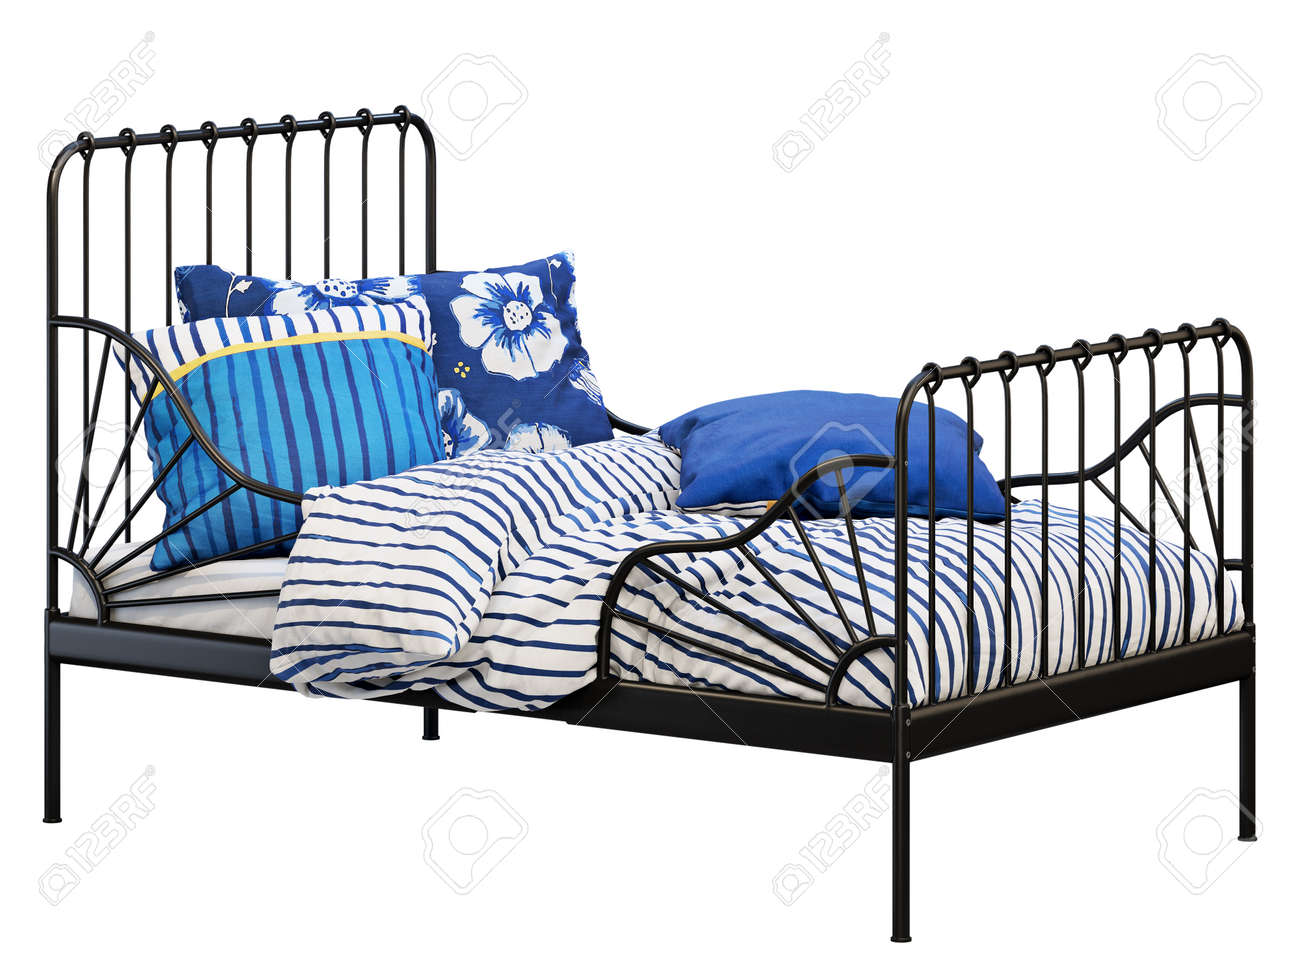 Black Metal Frame Single Children S Bed With Colorful Linen On Stock Photo Picture And Royalty Free Image Image 138135265